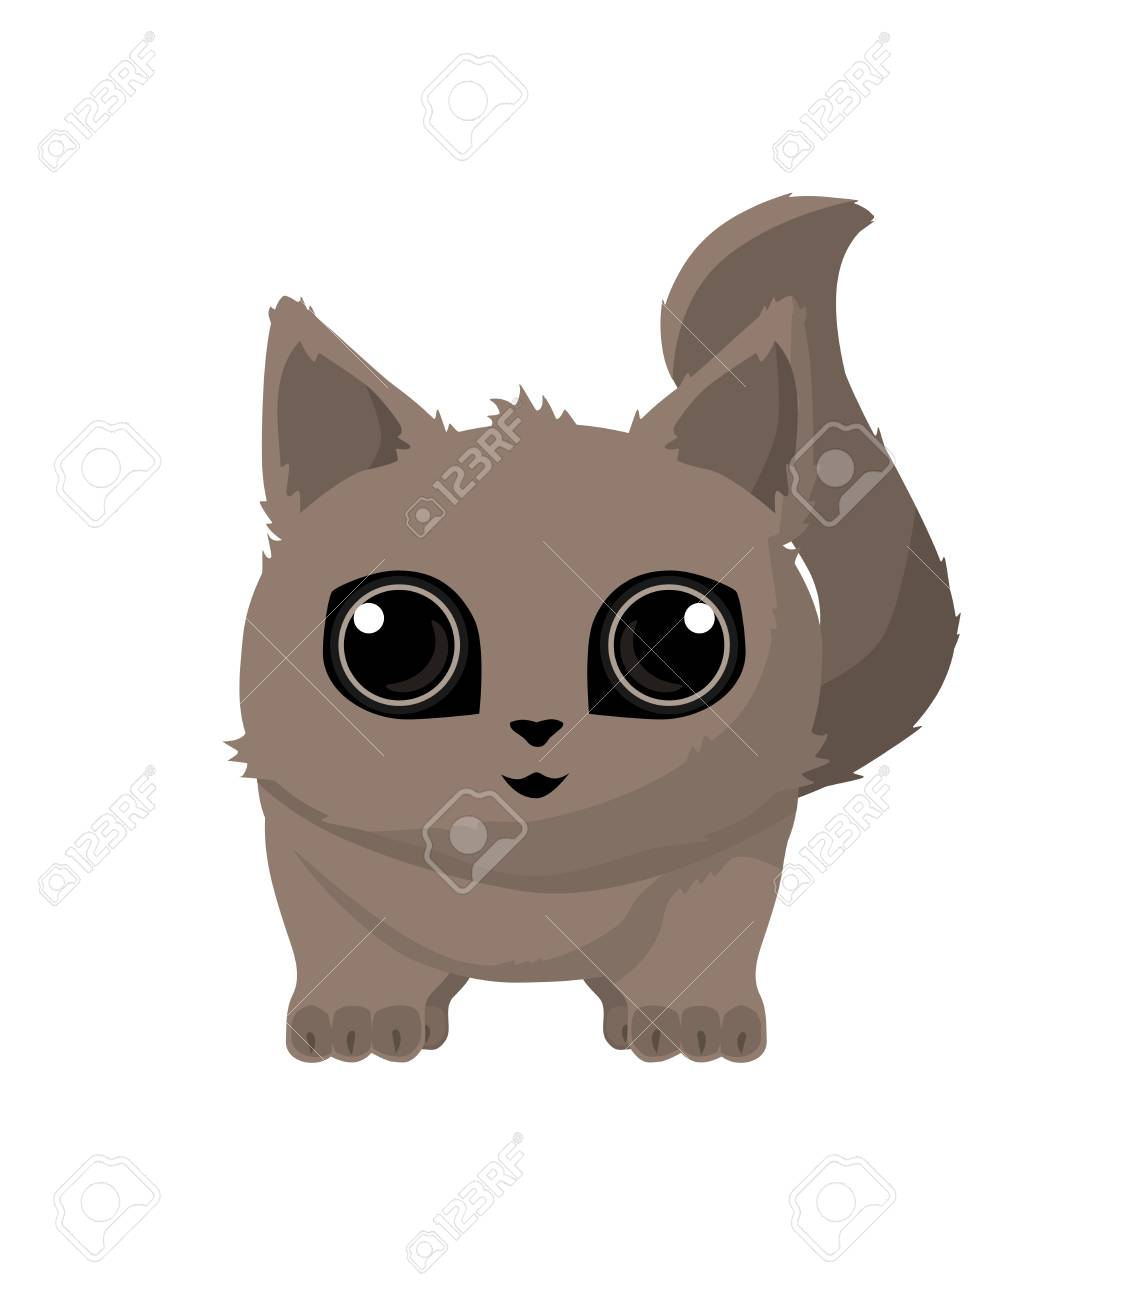 Cute Cat detailed with big eyes with shadows - 95150969